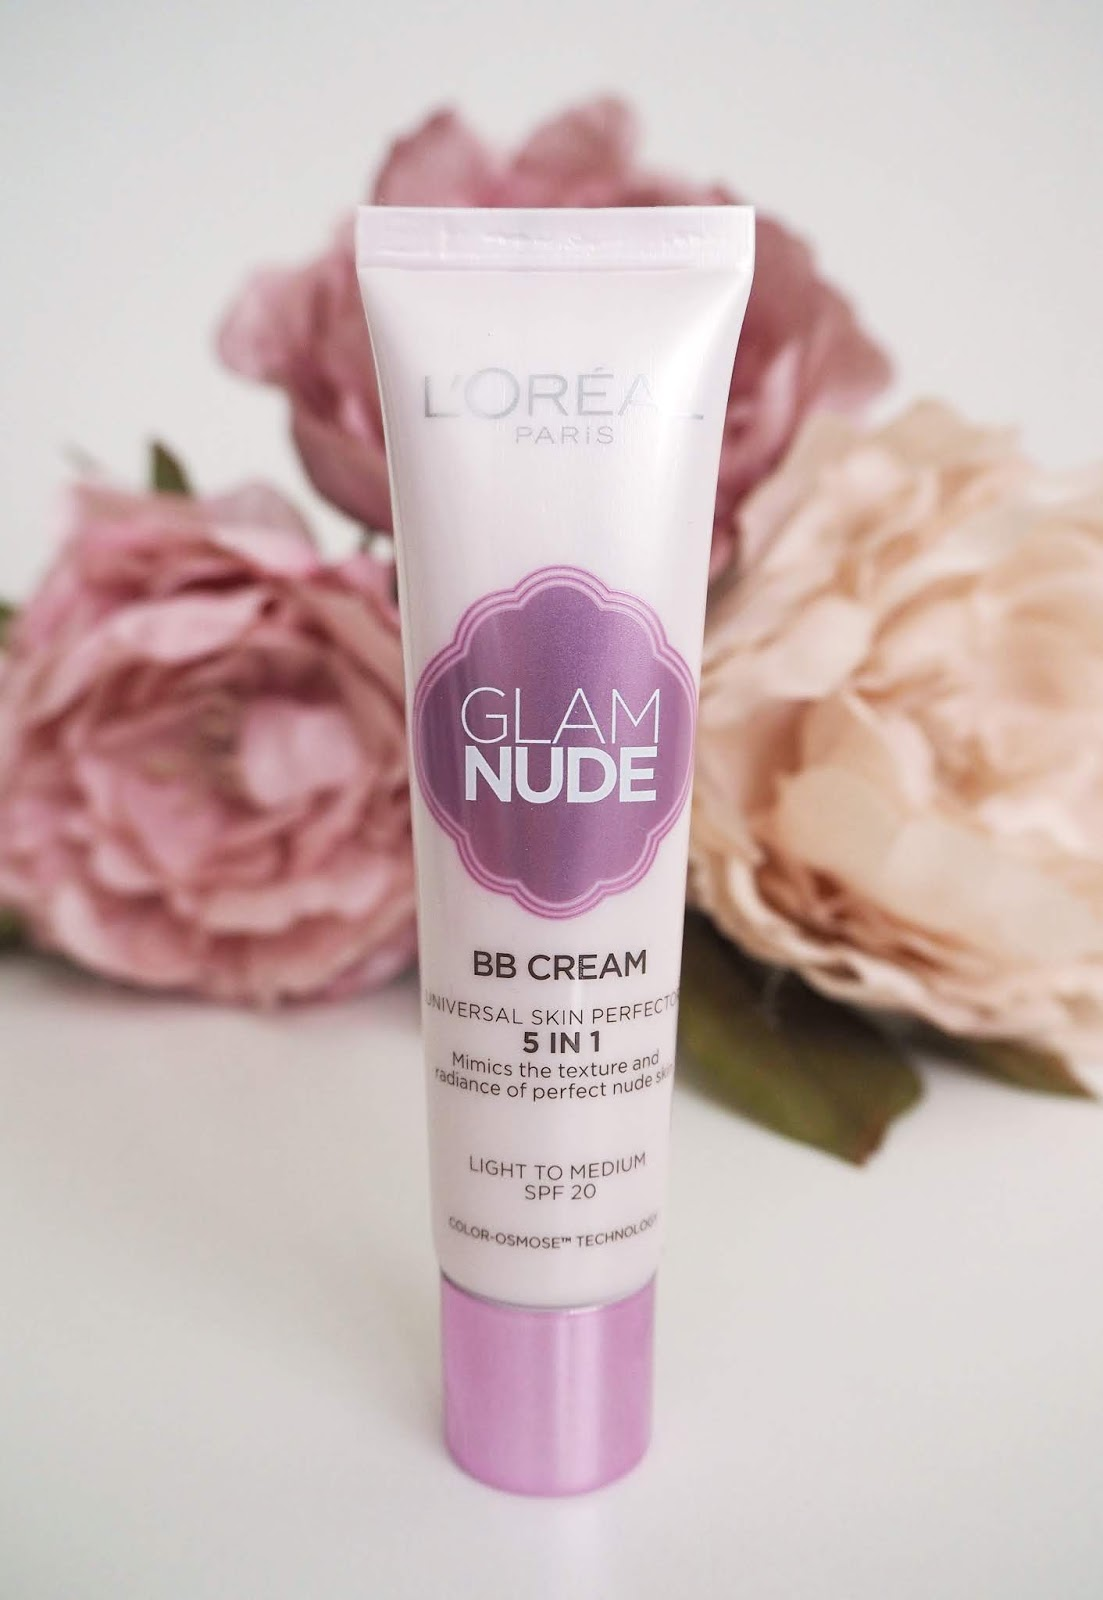 L'OREAL PARIS GLAM NUDE BB CREAM 5in1